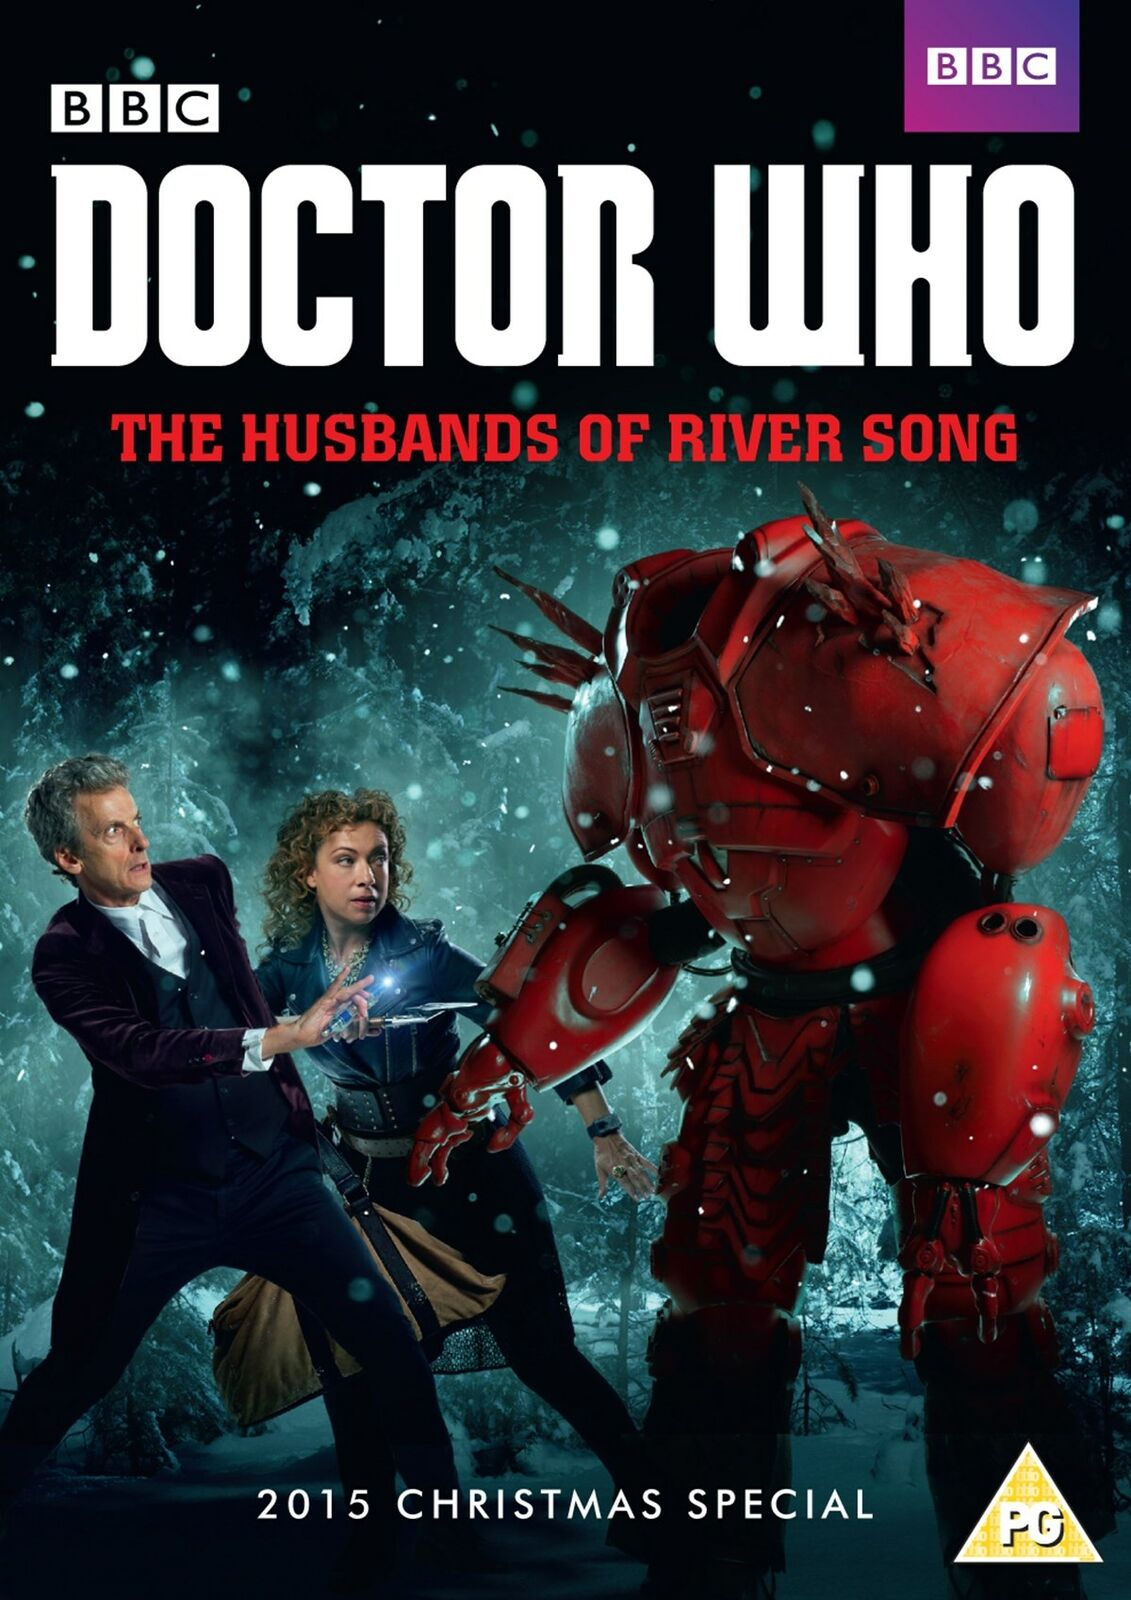 Husbands of river song uk dvd